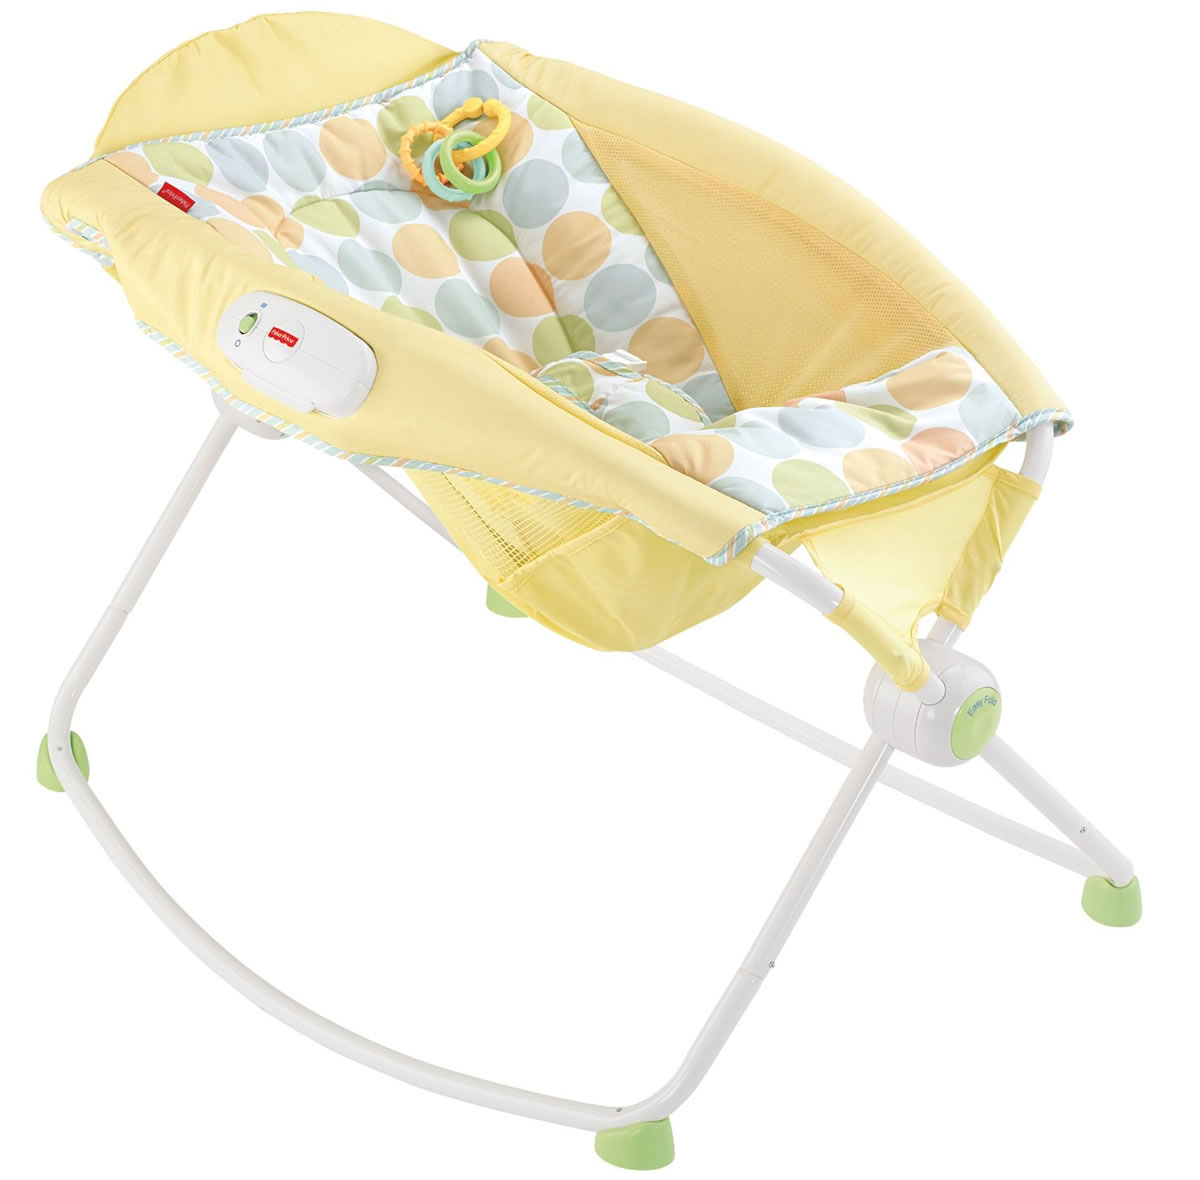 4317 moreover Top 10 Best Baby High Chair Reviews In 2015 further Toddler High Chair in addition Fisher Price Easy Fold High further 23981457. on fisher price easy fold high chair